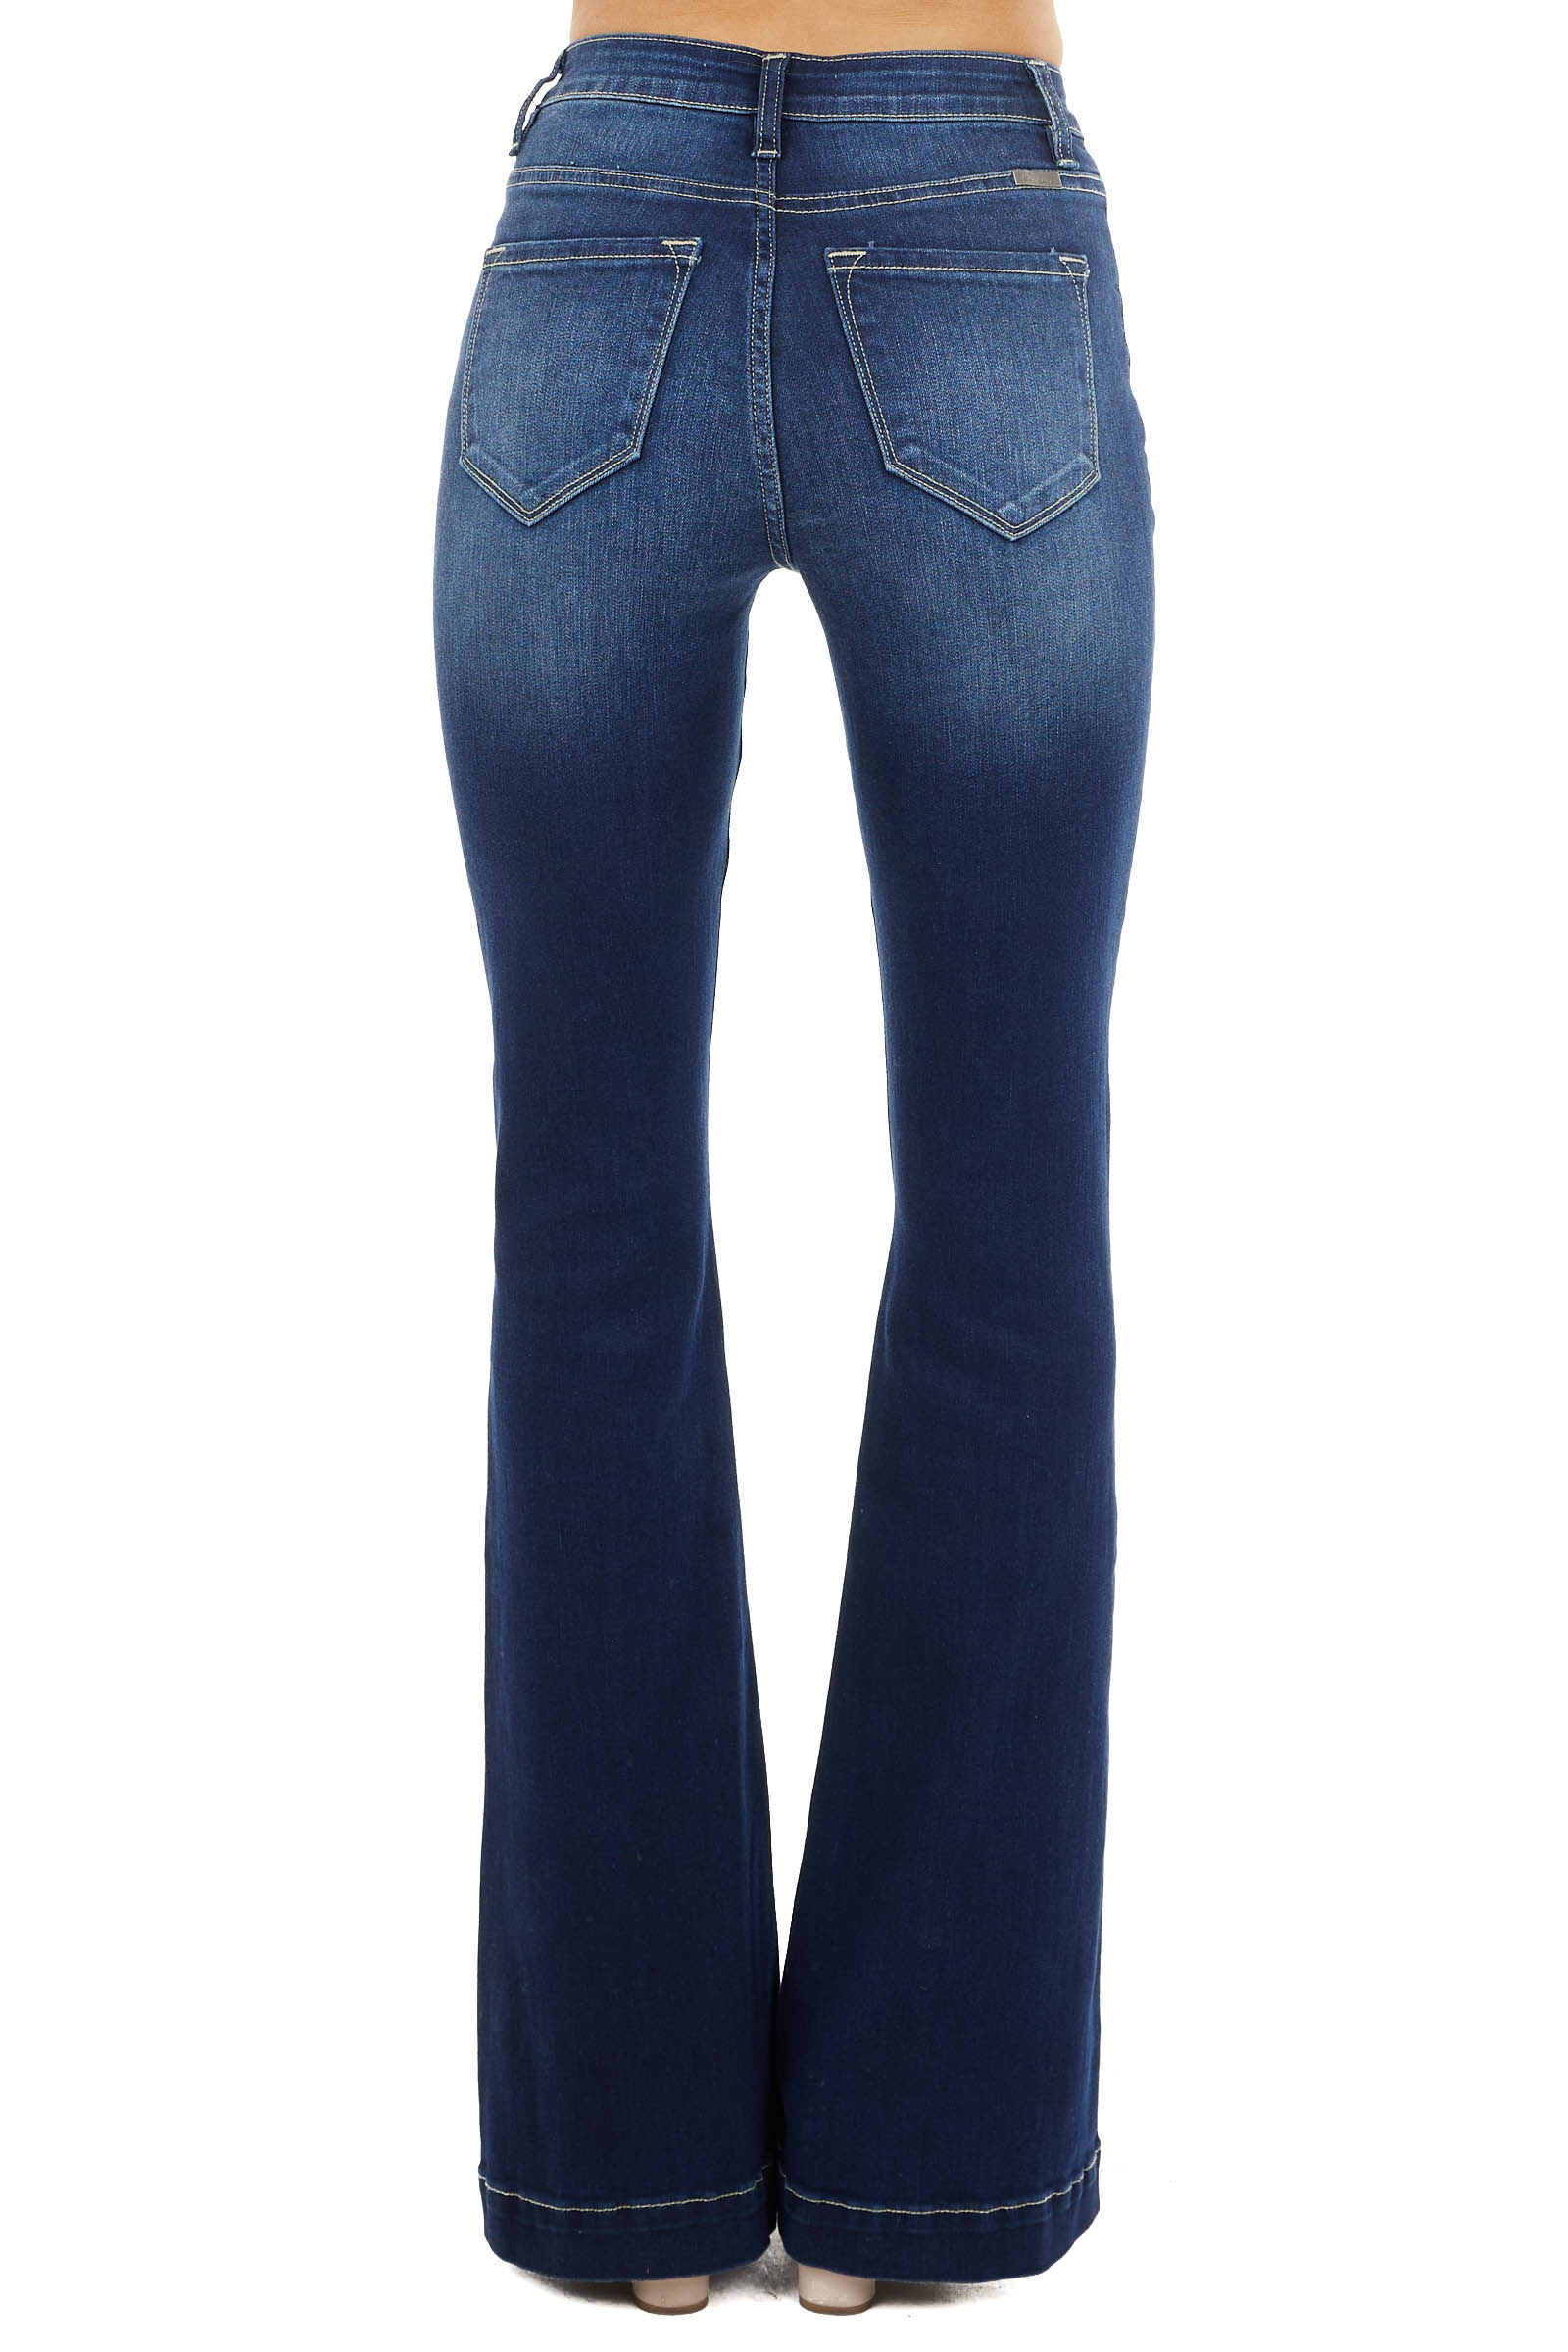 Dark Wash High Rise Flare Jeans with Exposed Button Detail